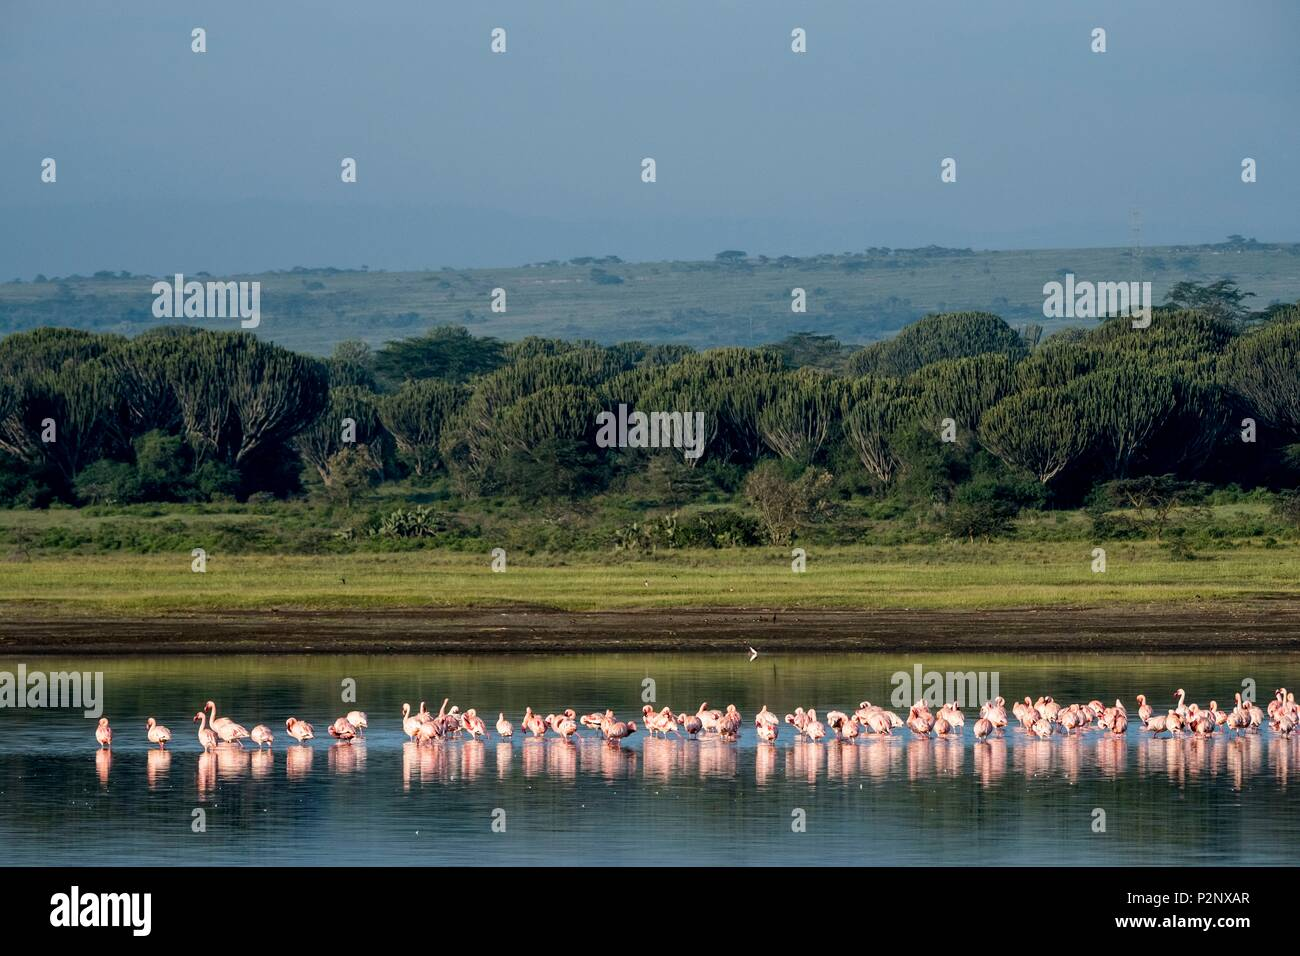 Kenya, Soysambu conservancy, lesser flamingo (Phoeniconaias minor), on the lake Elementeita - Stock Image